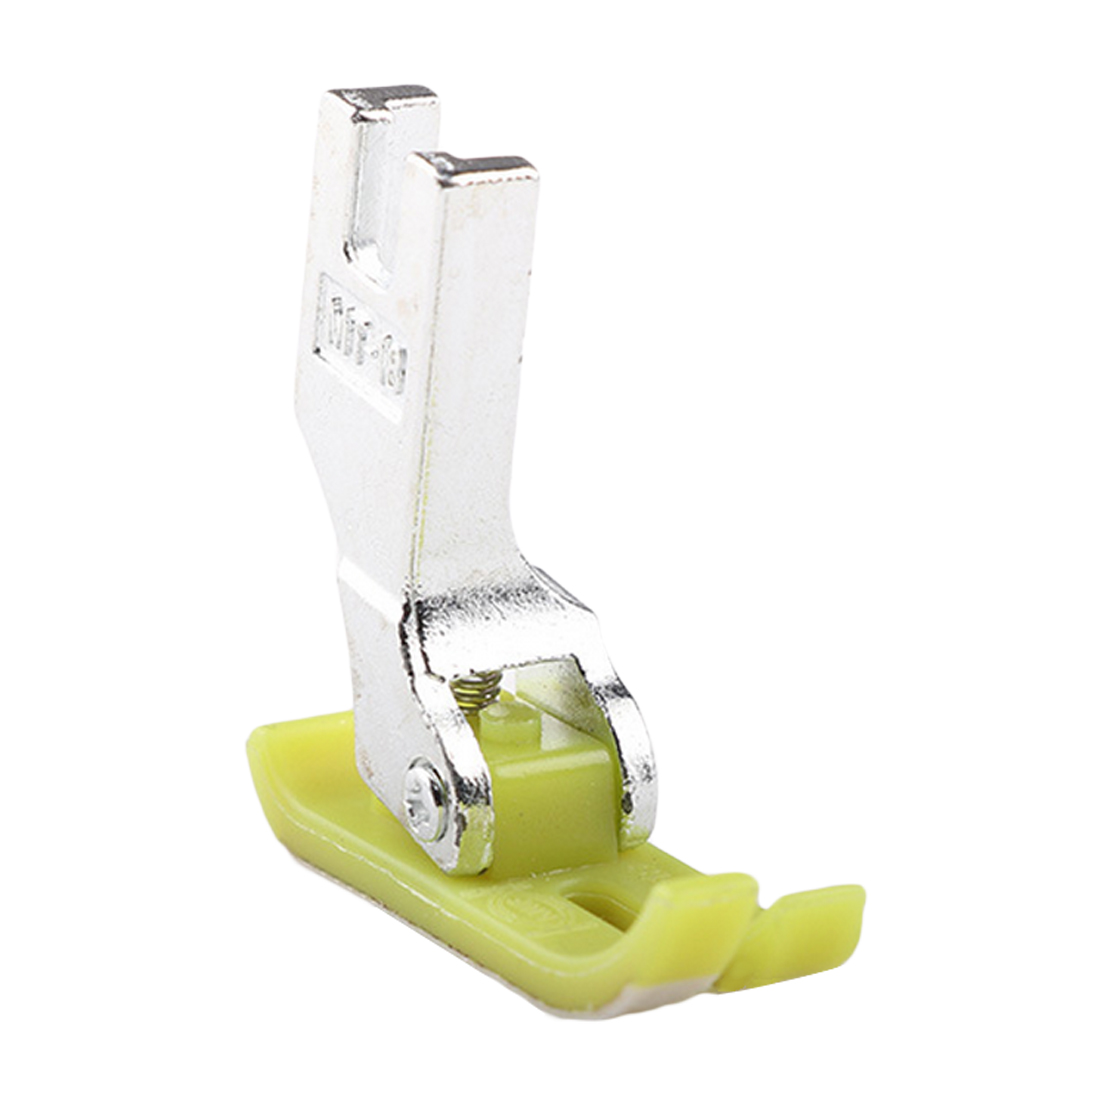 Household Sewing Machine Quilting Walking Guide Even Feet